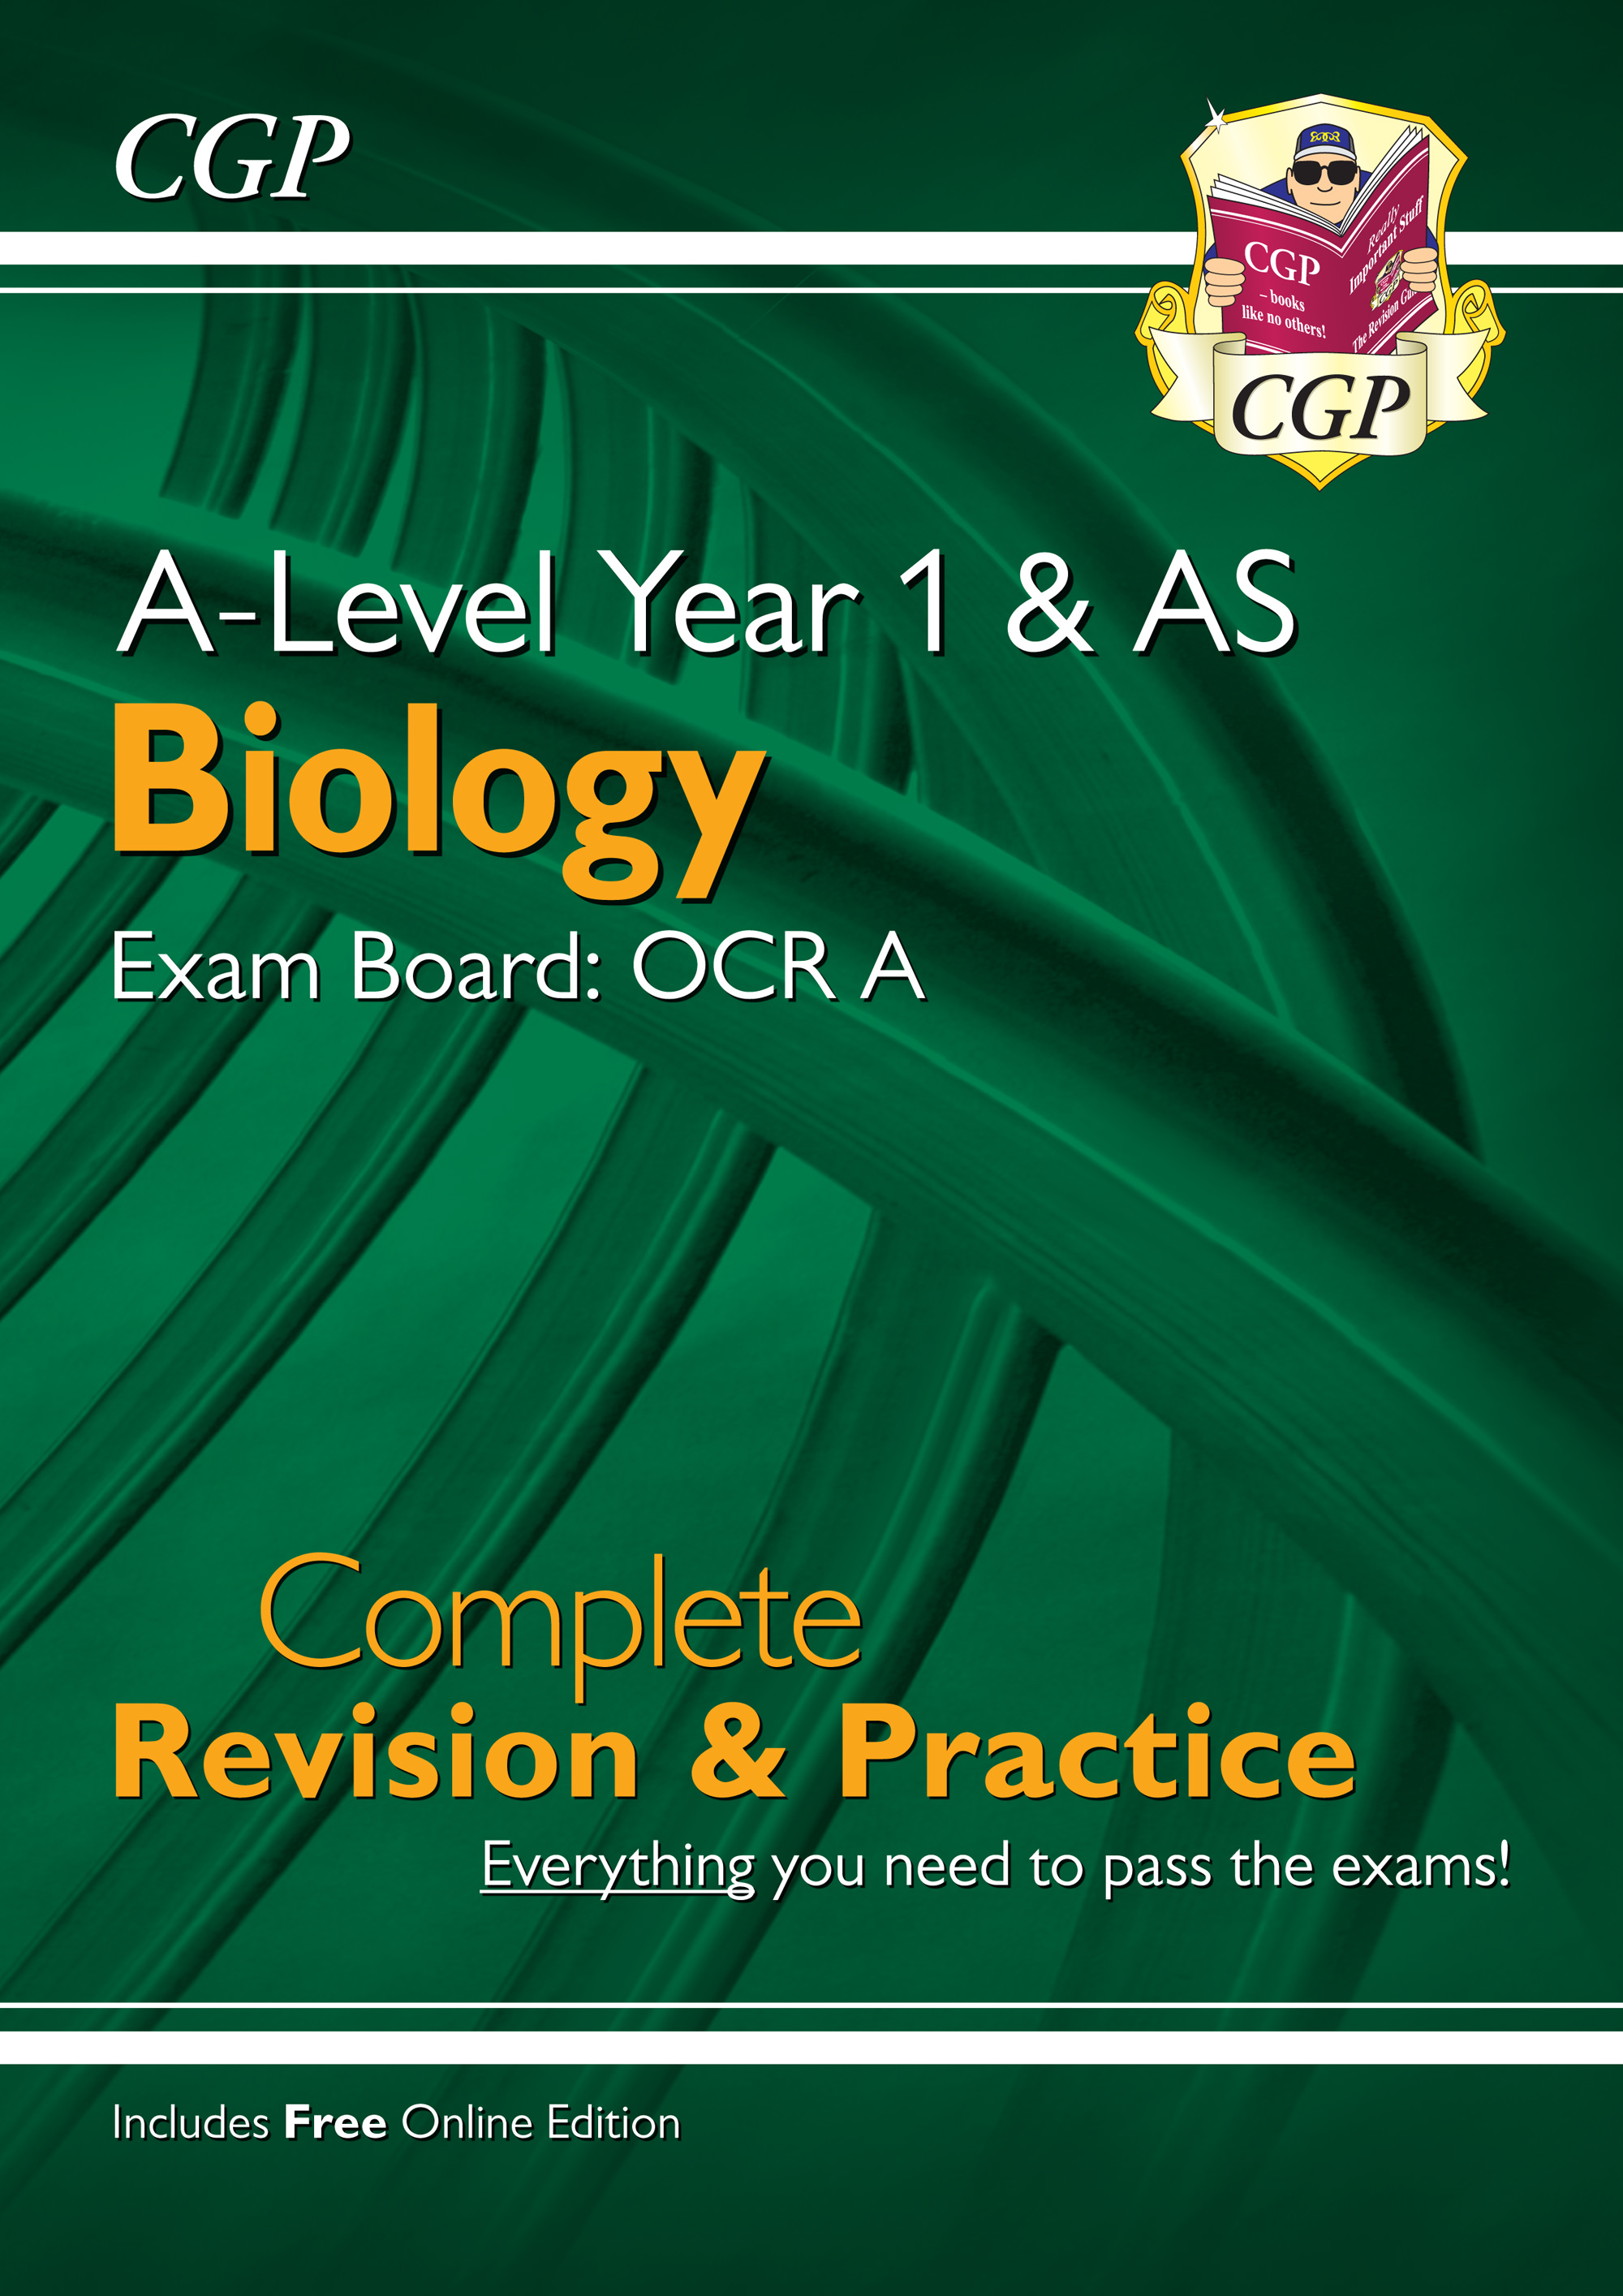 BRAR55 - A-Level Biology: OCR A Year 1 & AS Complete Revision & Practice with Online Edition